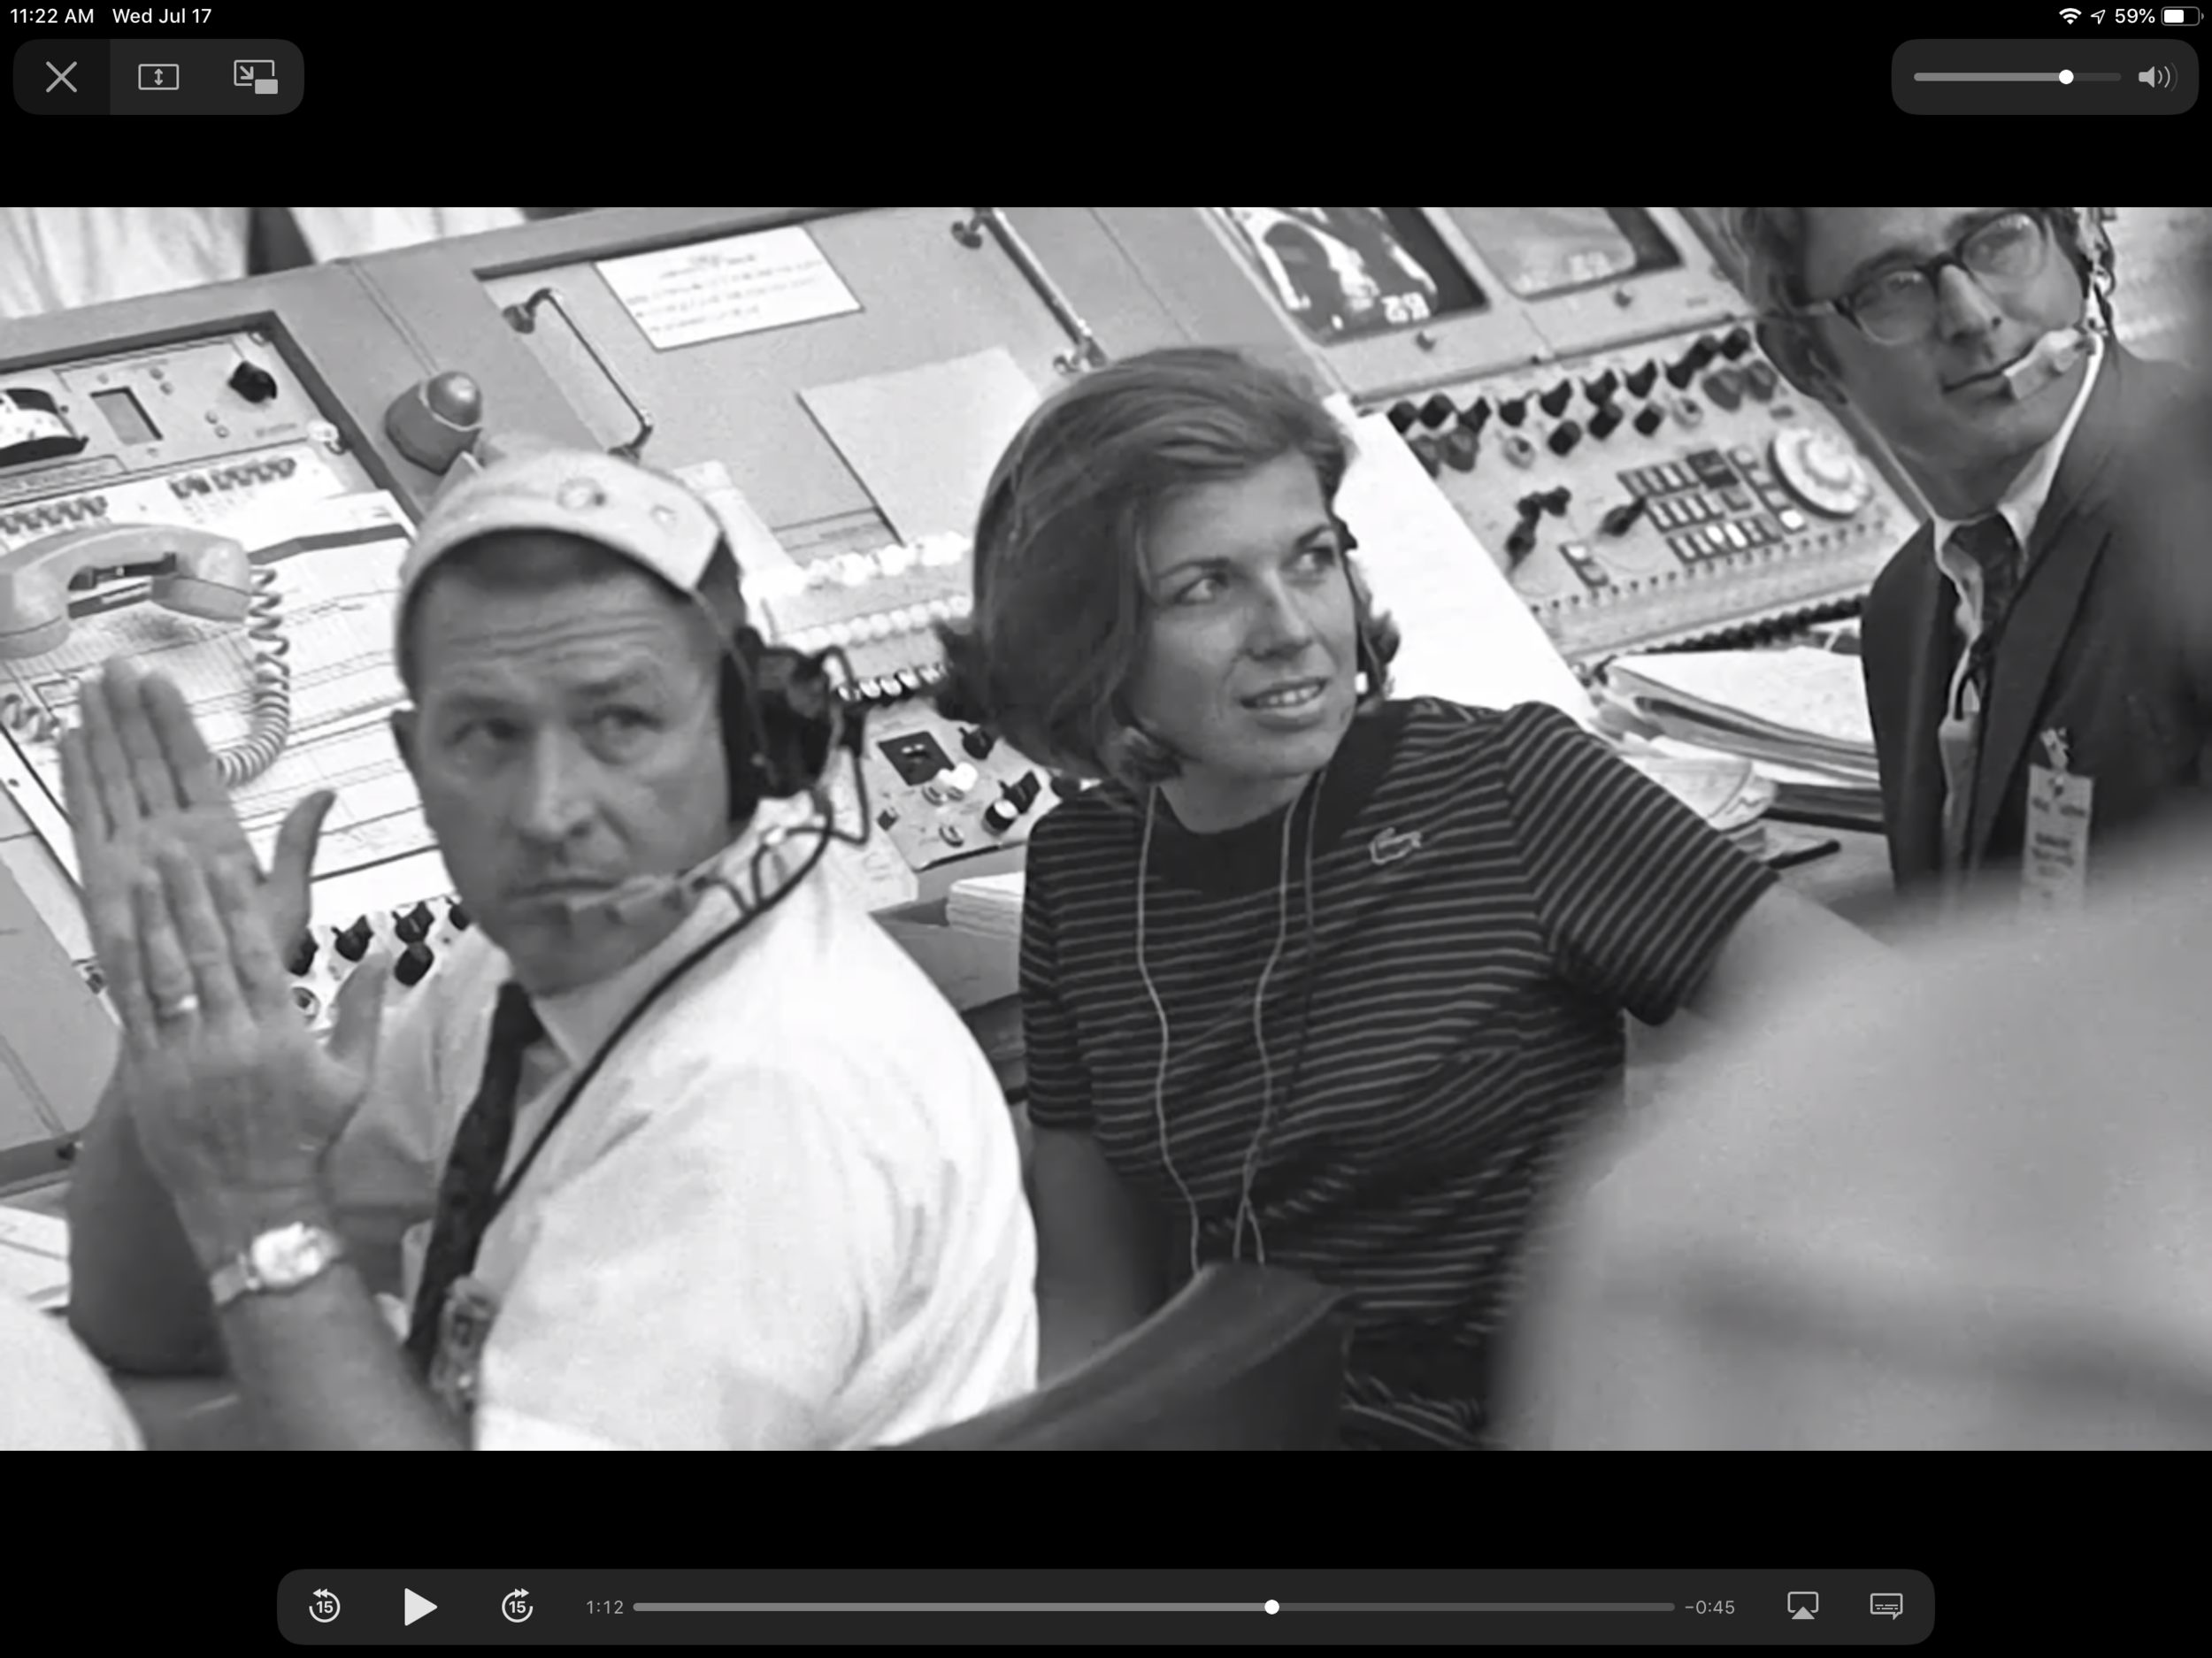 Margaret Hamilton, the only woman in the control room for the landing of Apollo 11.